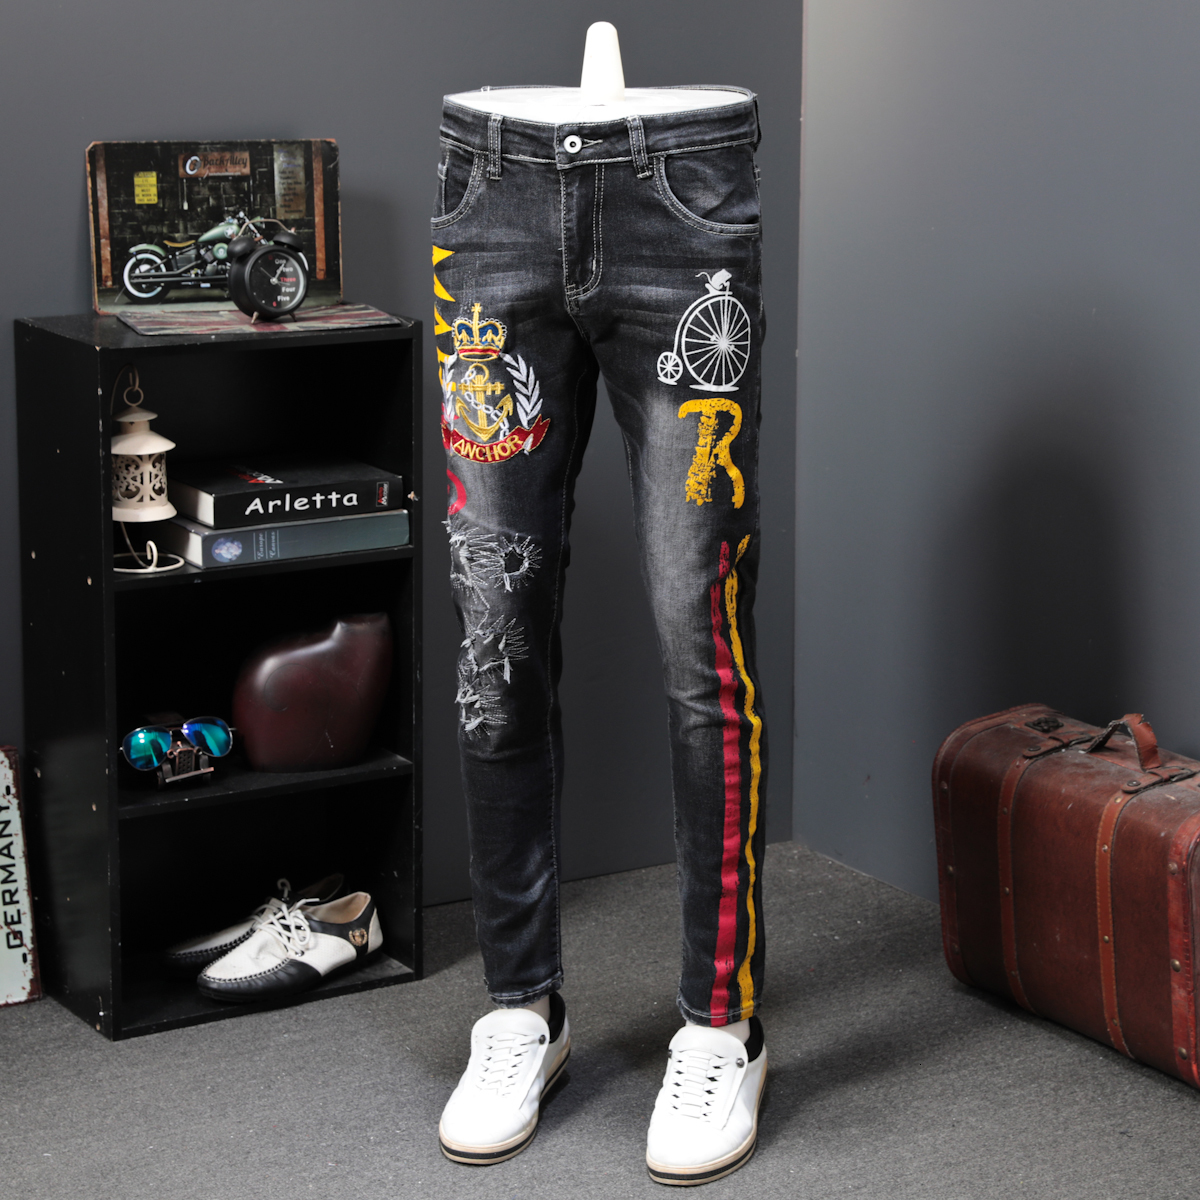 Autumn Men Elastic Long Trousers Fashion Print Jeans Male Colored Drawing Painted Slim Denim Pants Designer Jeans Printing Jeans